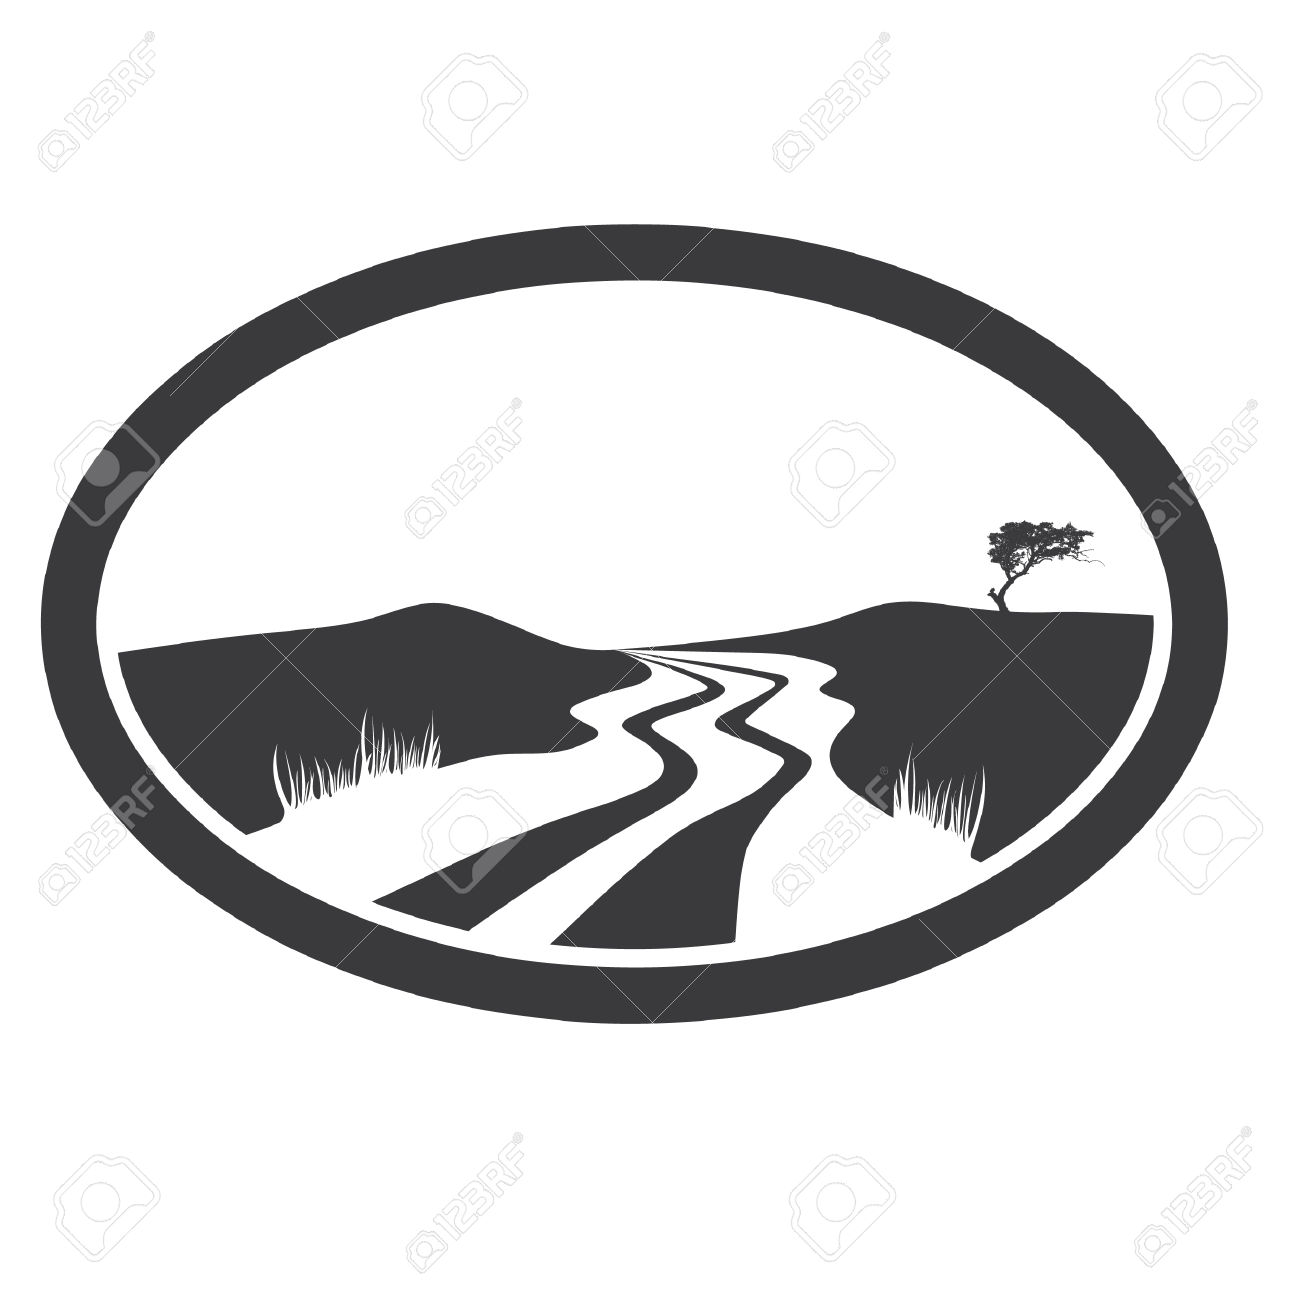 Mountains road clipart black and white png library stock River Clipart Black And White | Free download best River ... png library stock